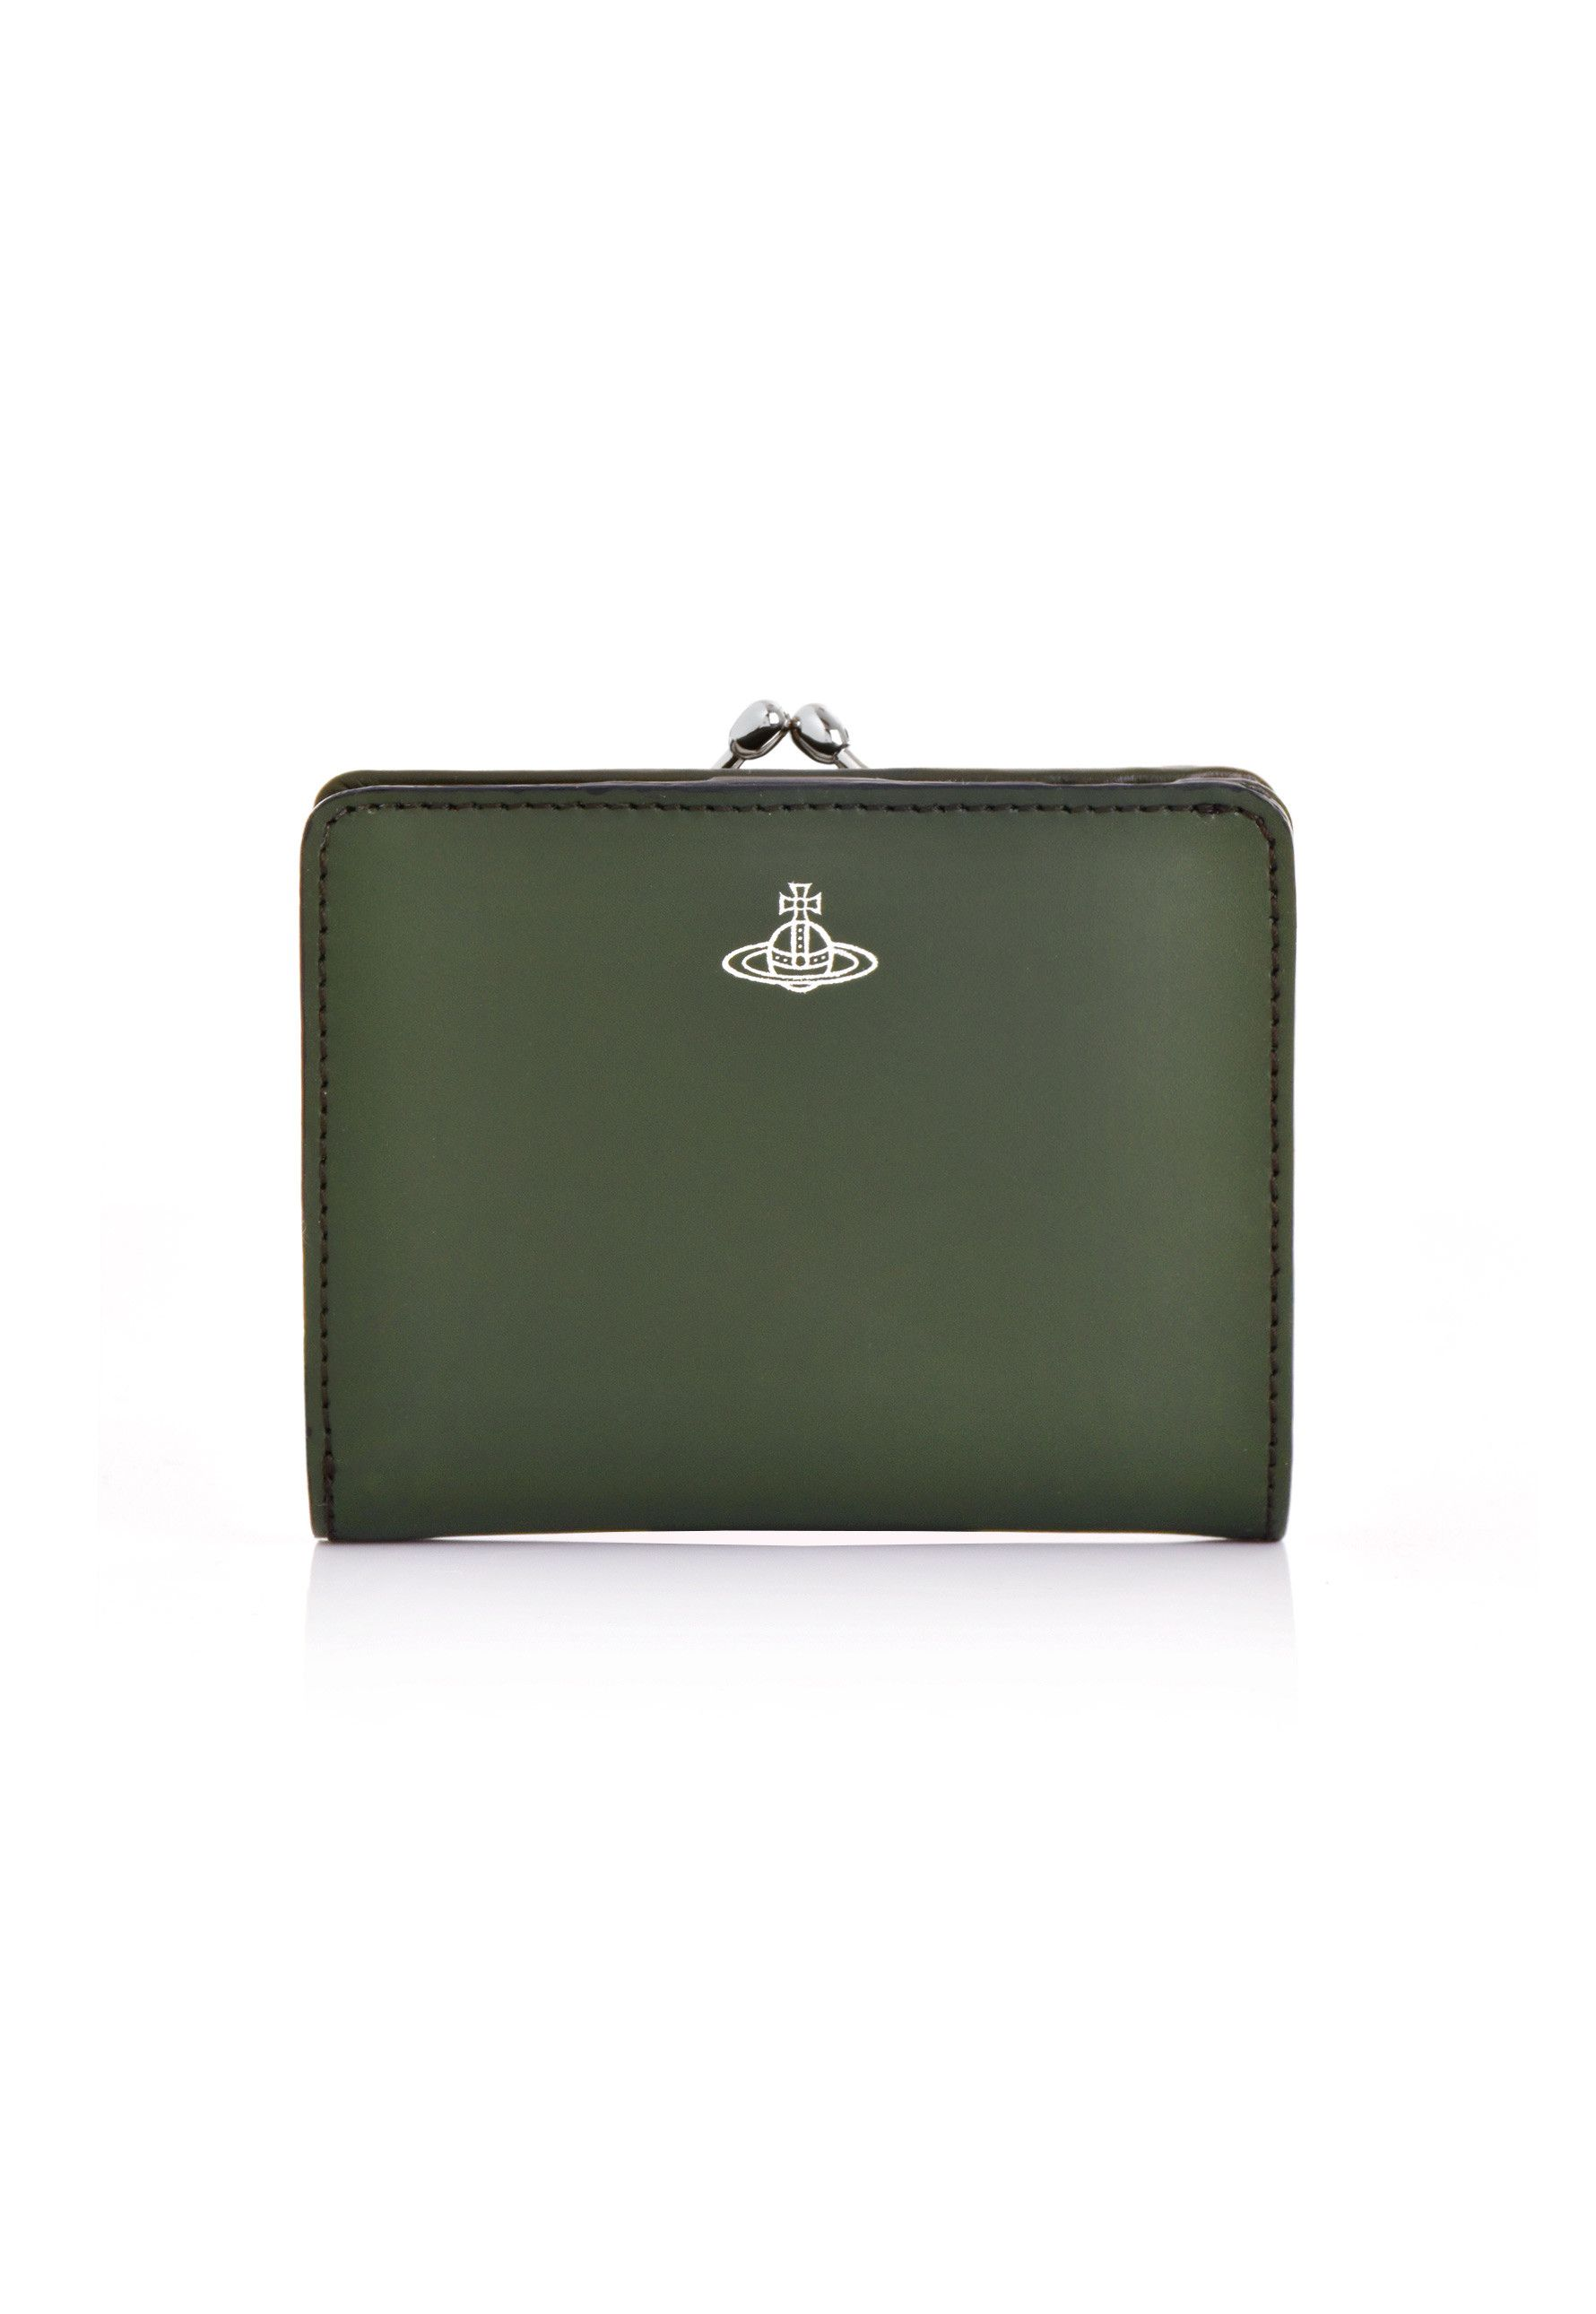 0dfc22e334 Vivienne Westwood Alex Purse With Frame Pocket 51010020 in green. Vivienne  Westwood's Alex clasp purse is cut from green leather for a timelessly ...